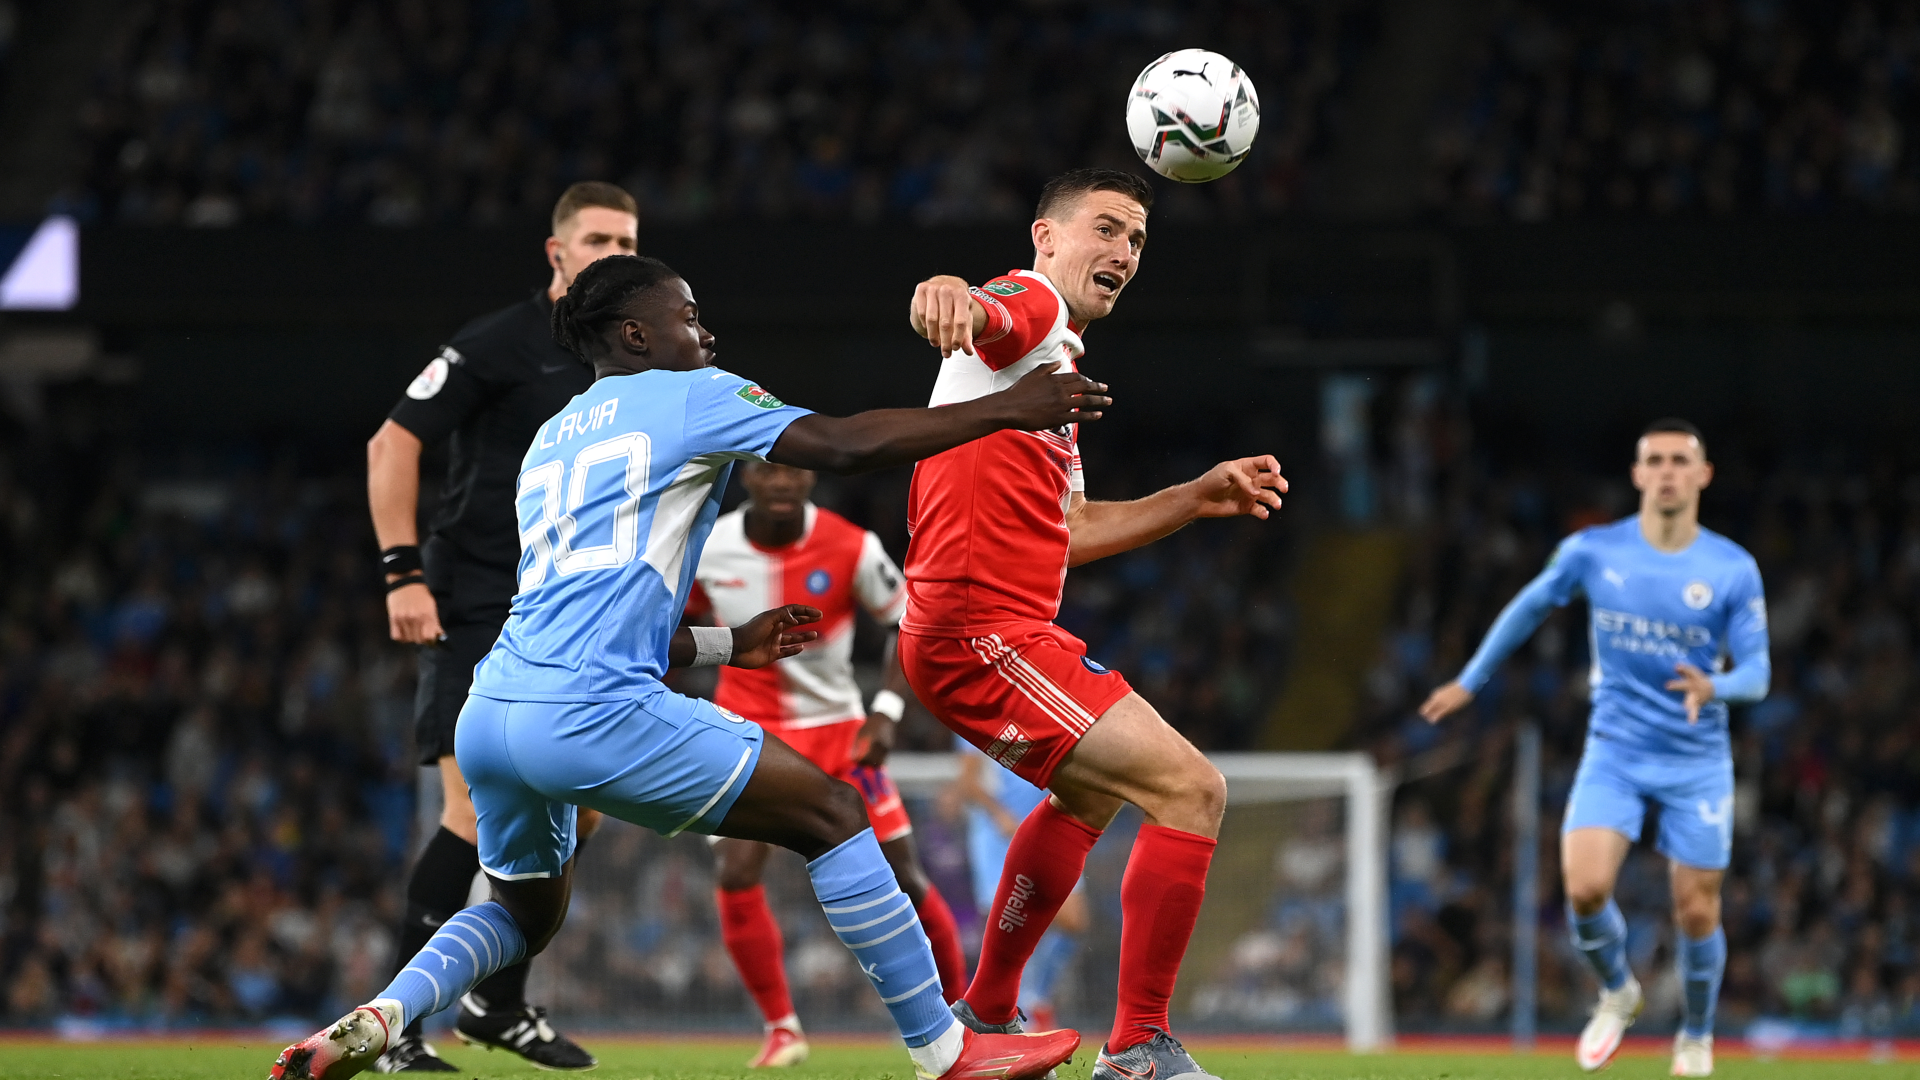 City passe l'obstacle Wycombe en Carabao Cup